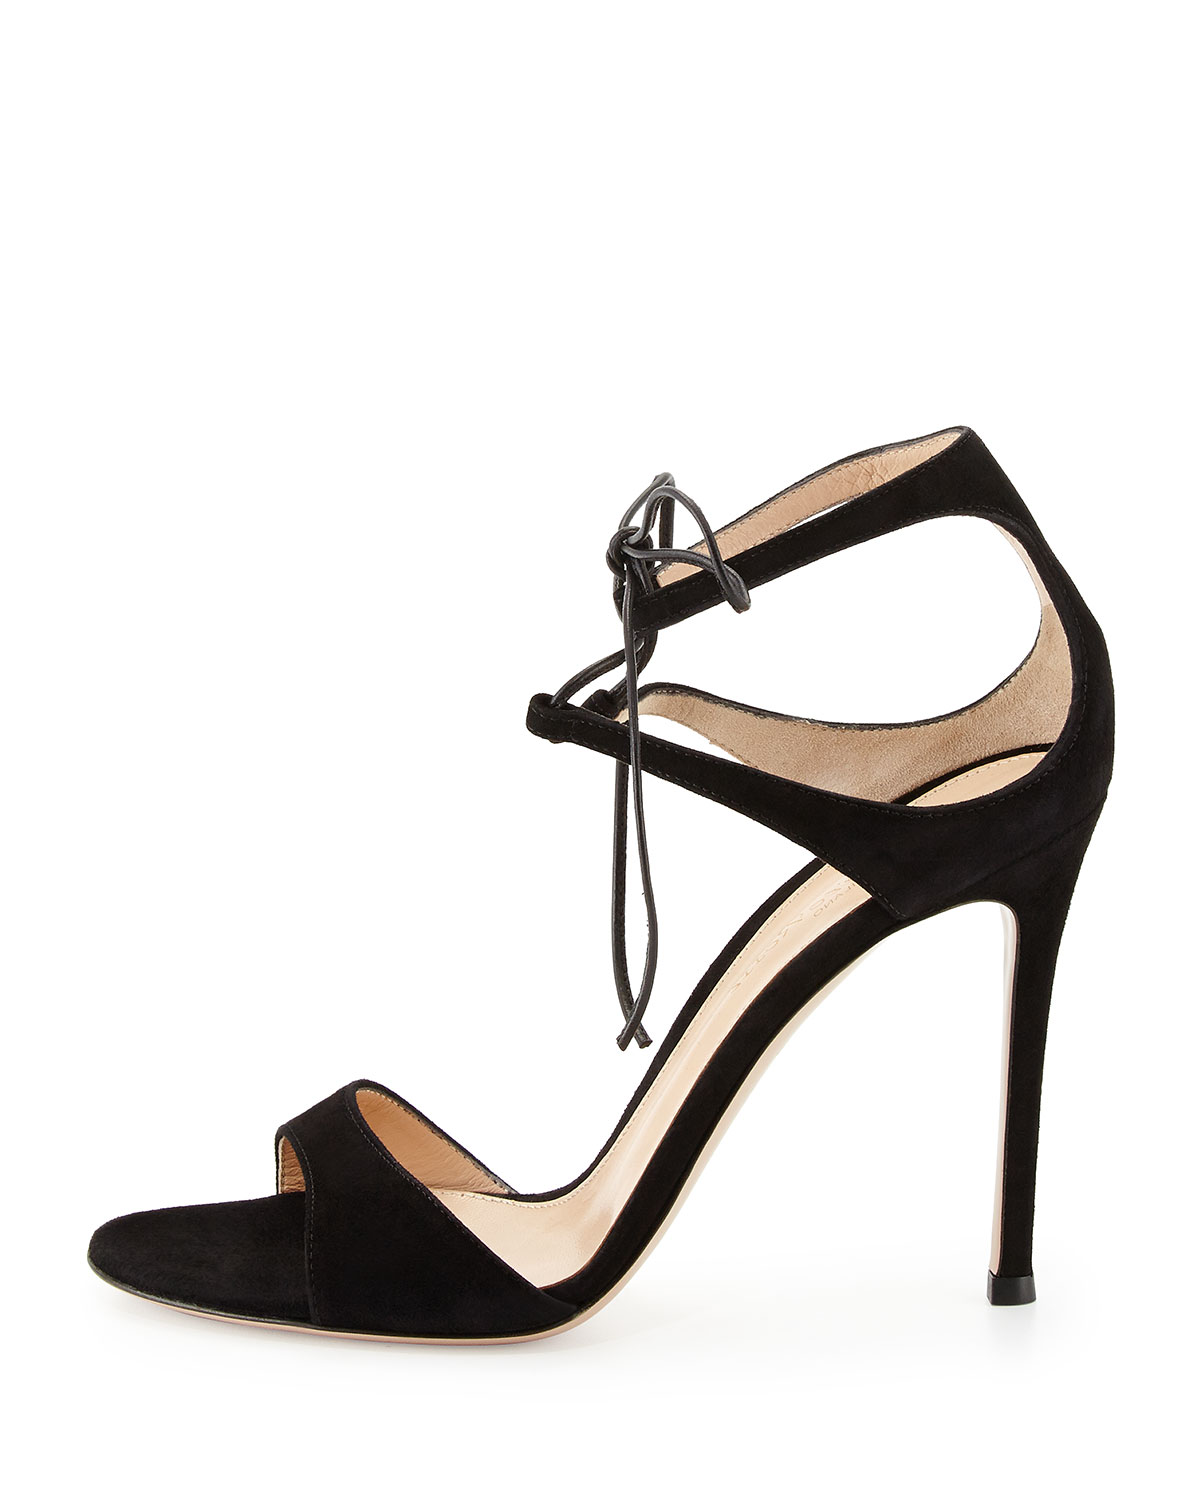 Gianvito Rossi Darcy Suede Sandals free shipping discounts sale new styles clearance fake best store to get sale online pay with visa cheap online xhg7zoXko